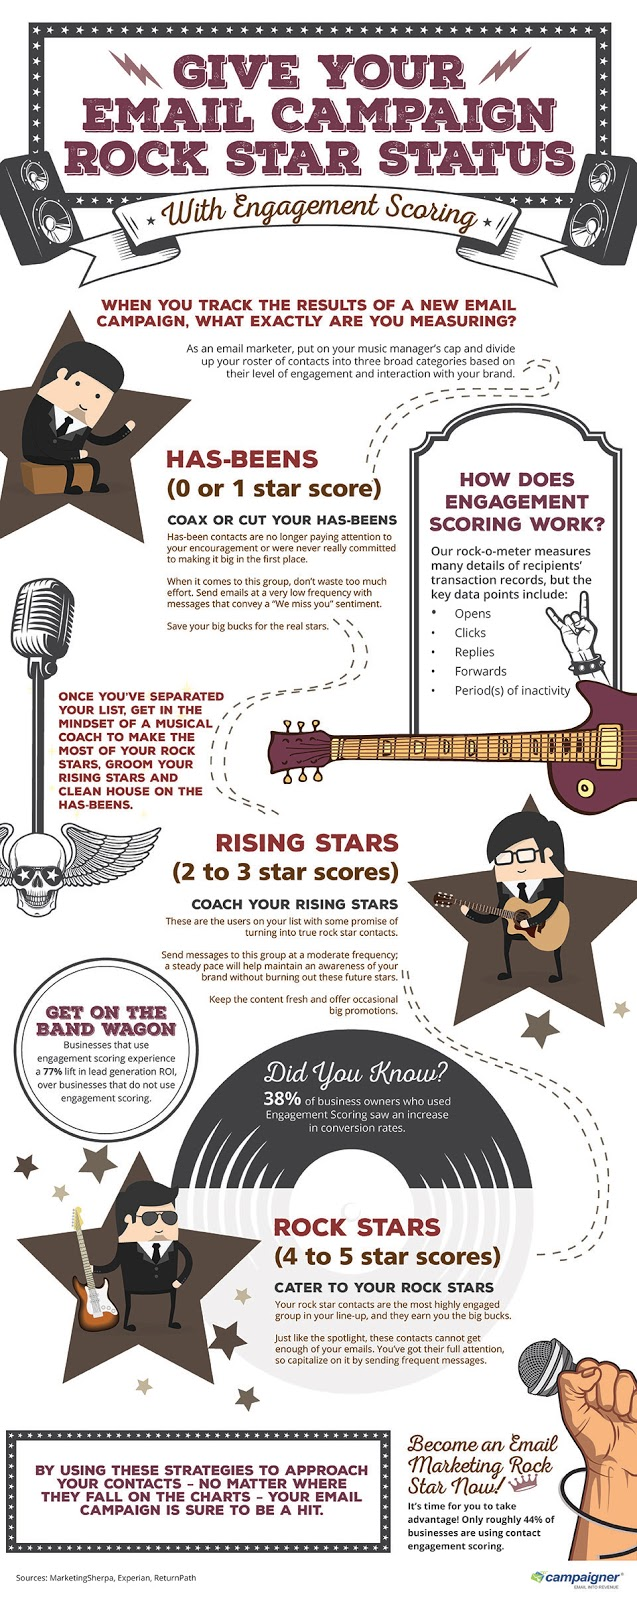 Get Campaign Rock Star Status with Campaigner Engagement Scoring